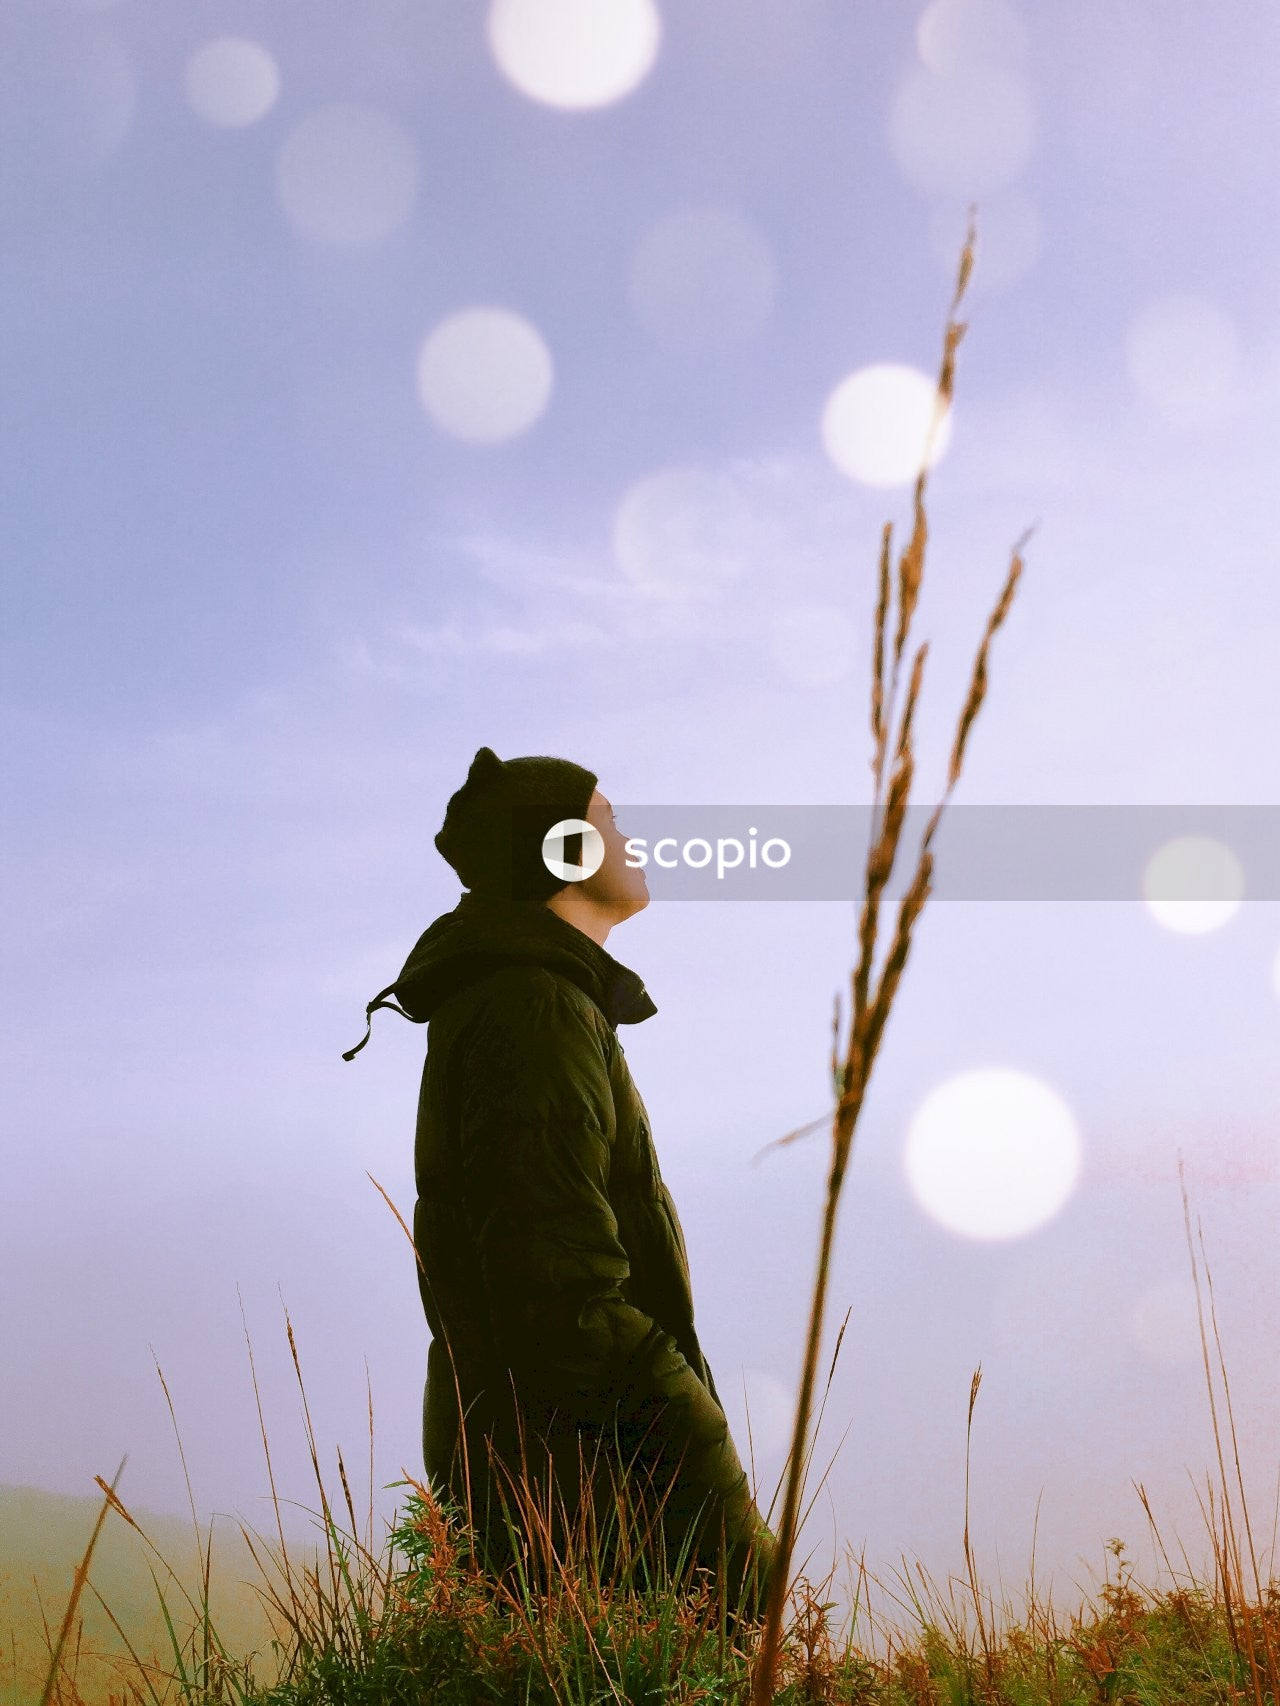 Silhouette of a person wearing black hat and jacket during sunset